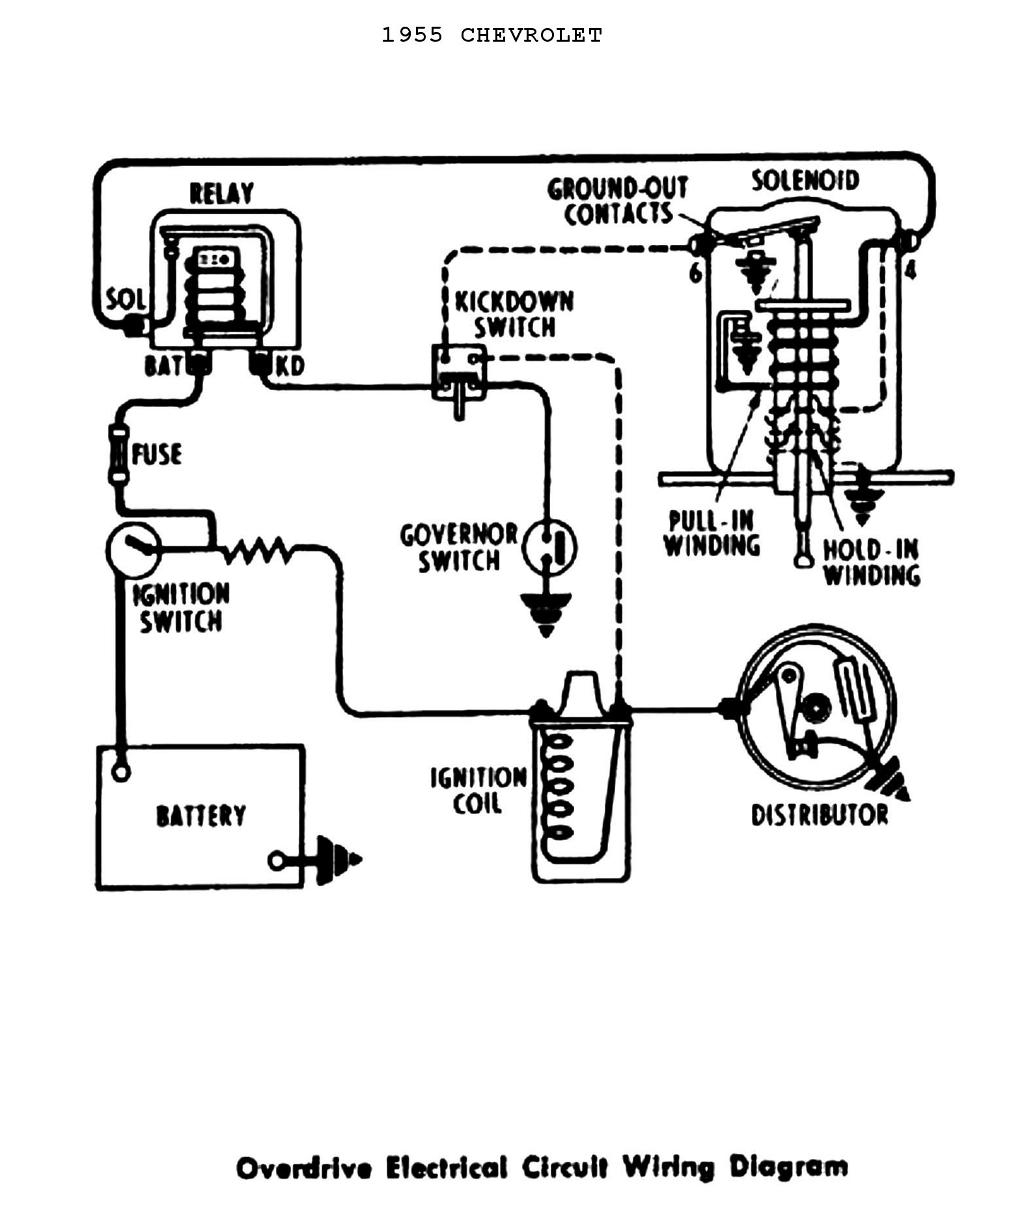 1965 chrysler wiring diagram engine